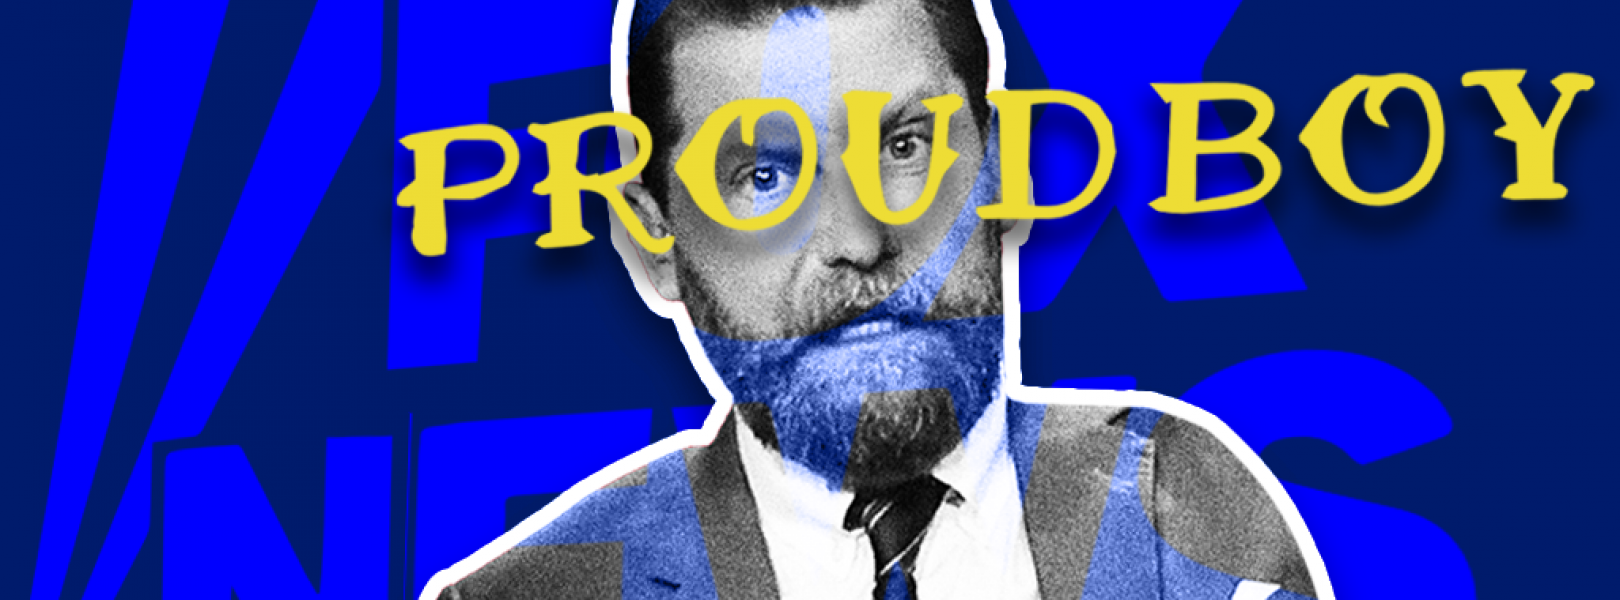 Gavin McInnes with the logos for the Proud Boys and Fox News